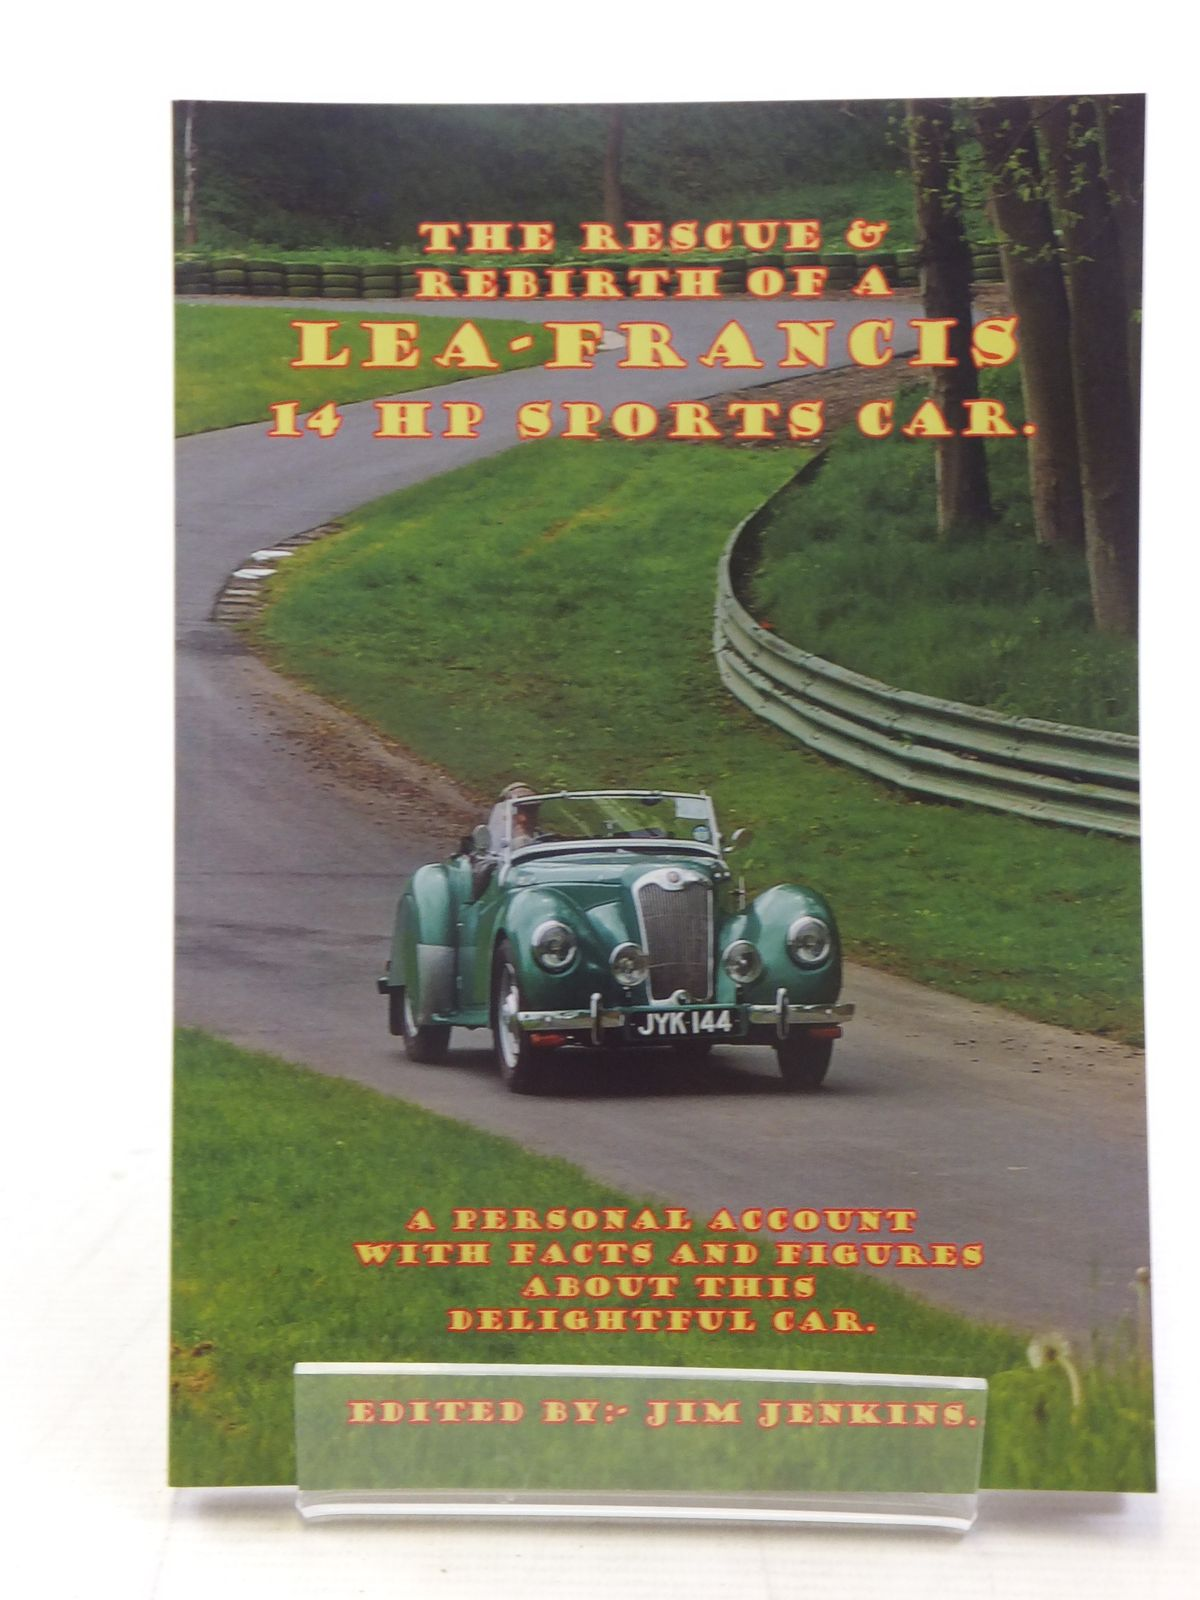 Photo of THE RESCUE & REBIRTH OF A LEA-FRANCIS 14 HP SPORTS CAR written by Jenkins, Jim published by Jim Jenkins (STOCK CODE: 1607115)  for sale by Stella & Rose's Books